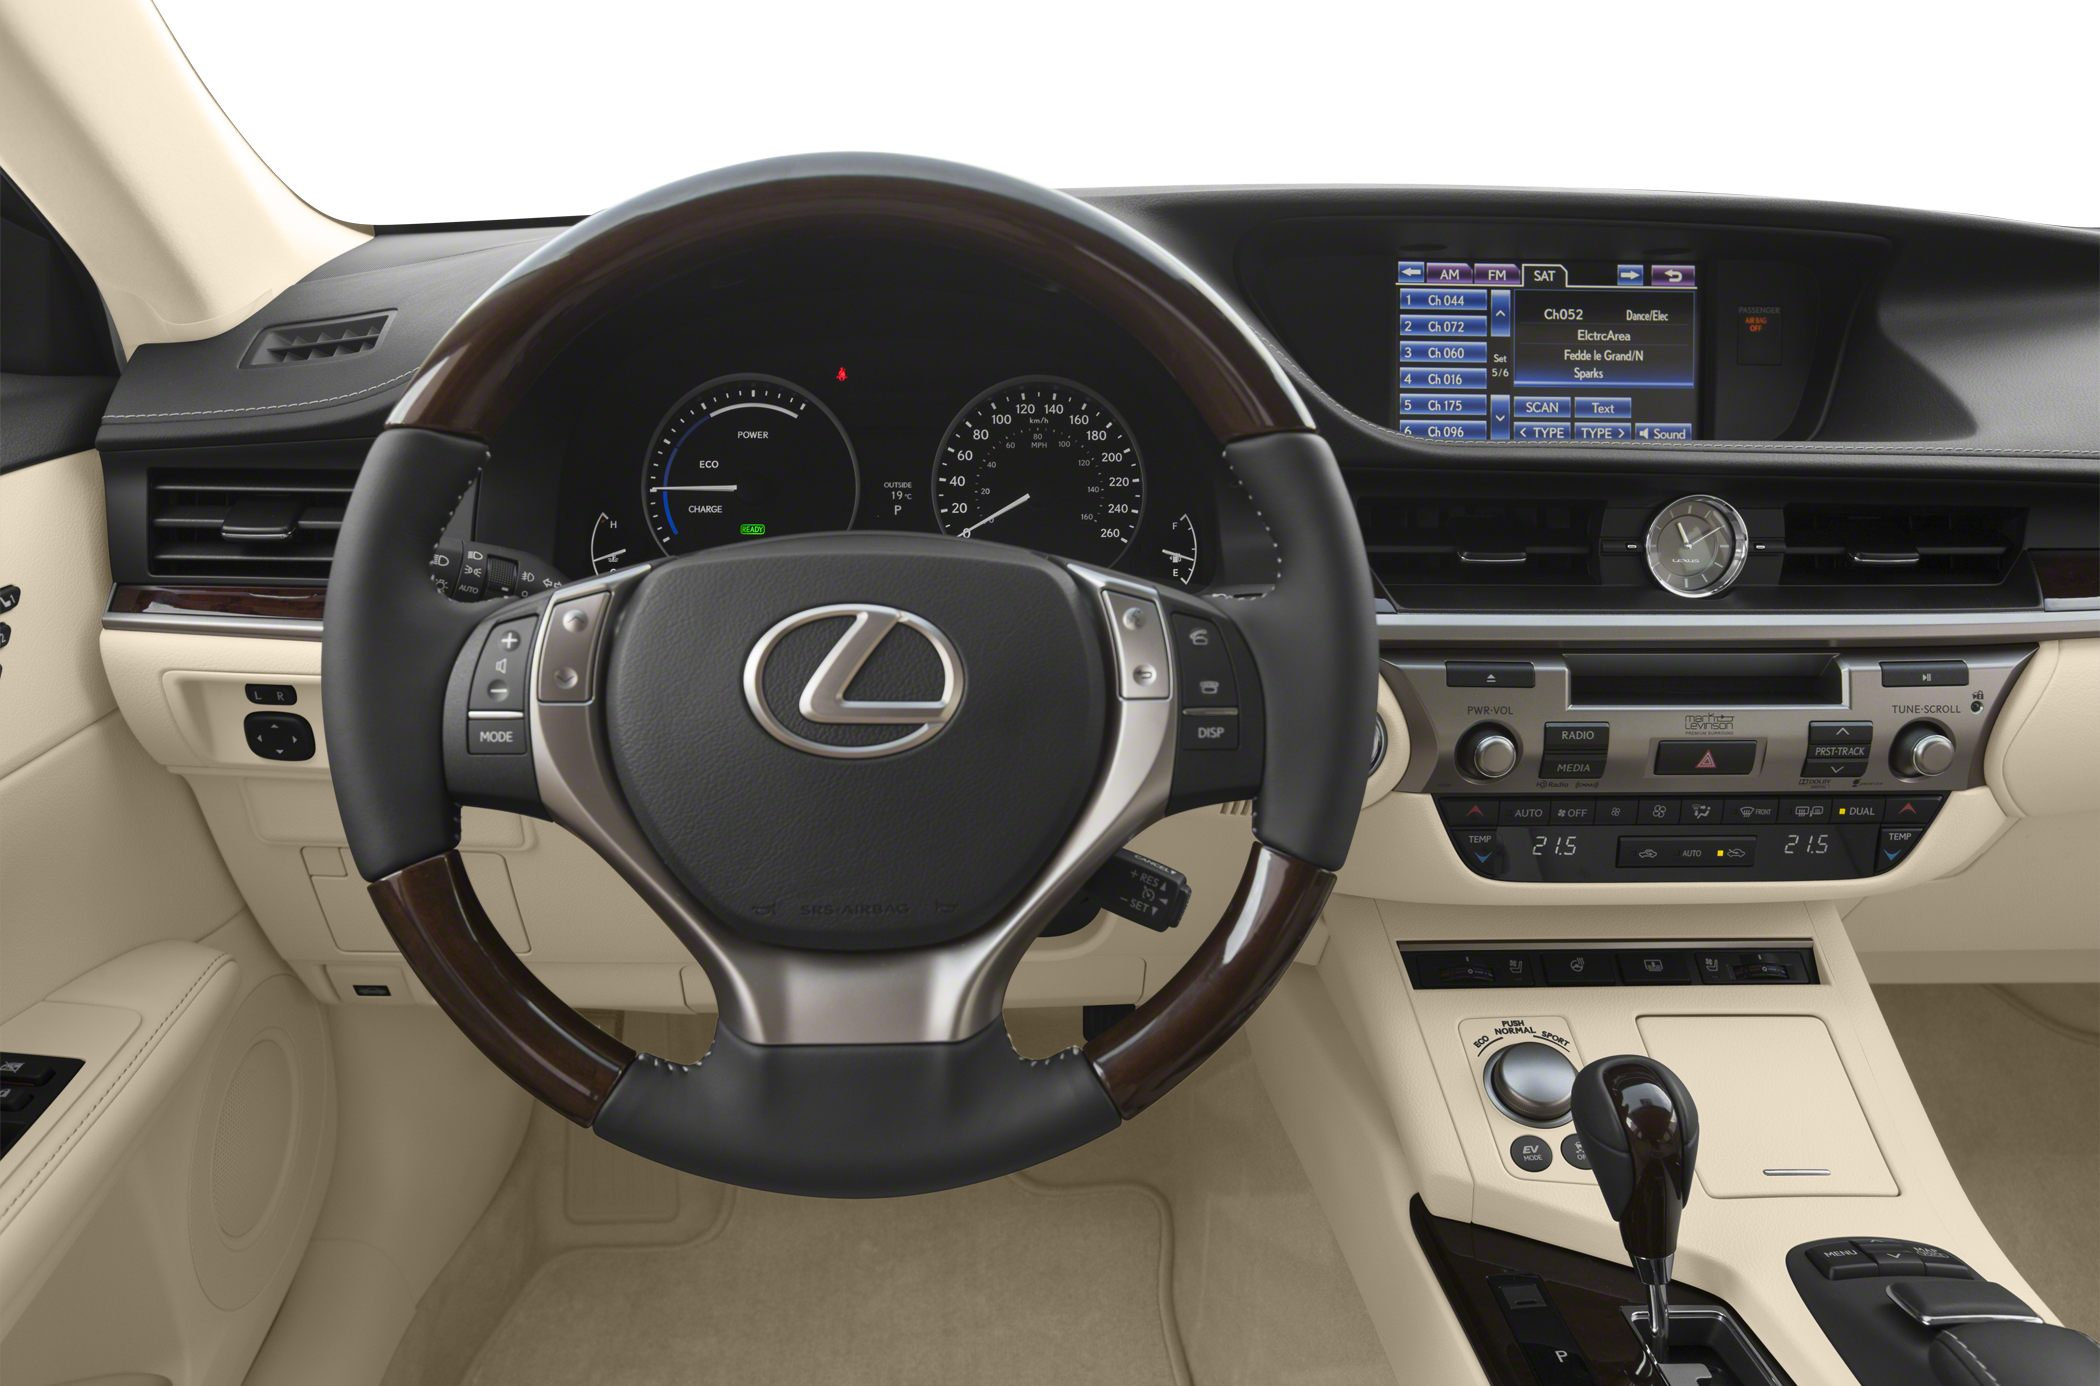 consumer the test daily guide es lexus drive